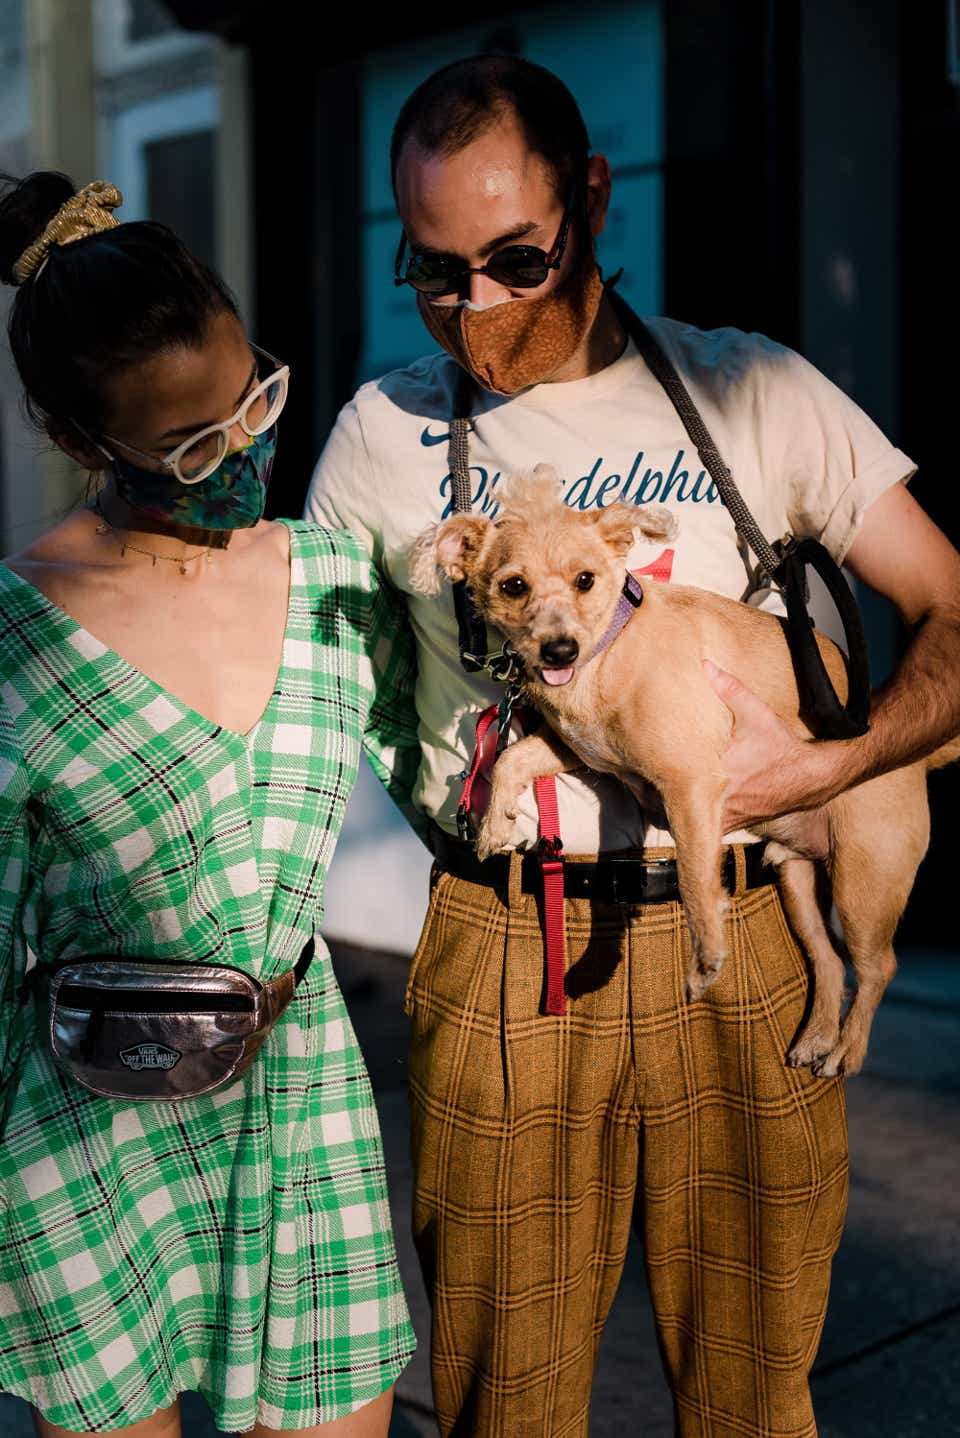 Cindy and Nick are posing together with their dog. Cindy is wearing her hair up in a top-knot with a yellow scrunchie and eyeglasses. She has on a green, plaid dress with a metallic fanny pack. Nick is wearing a terracotta-colored face mask and matching trousers with a vintage NBA T-shirt and suspenders.